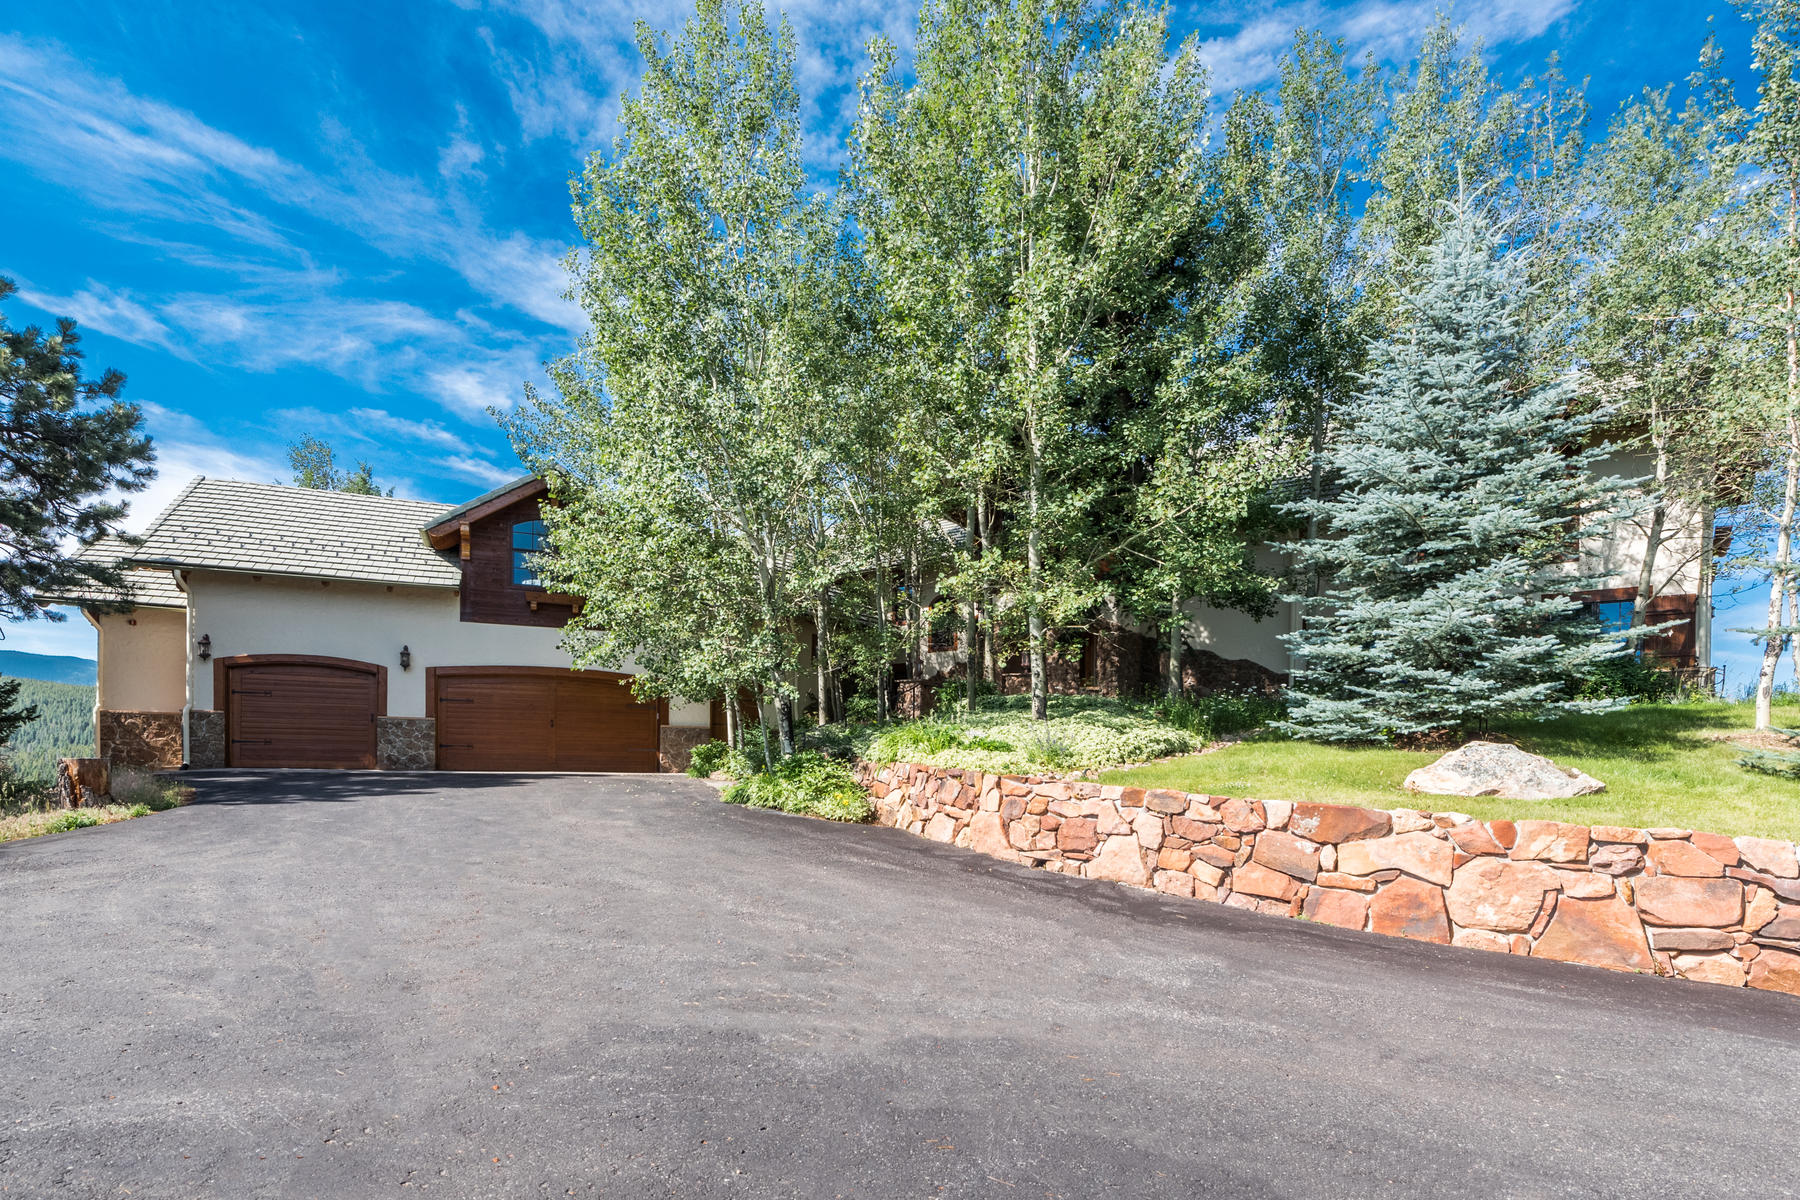 Additional photo for property listing at Aspen Meadows Ranch 34040 Buffalo Park Road Evergreen, Colorado 80439 United States